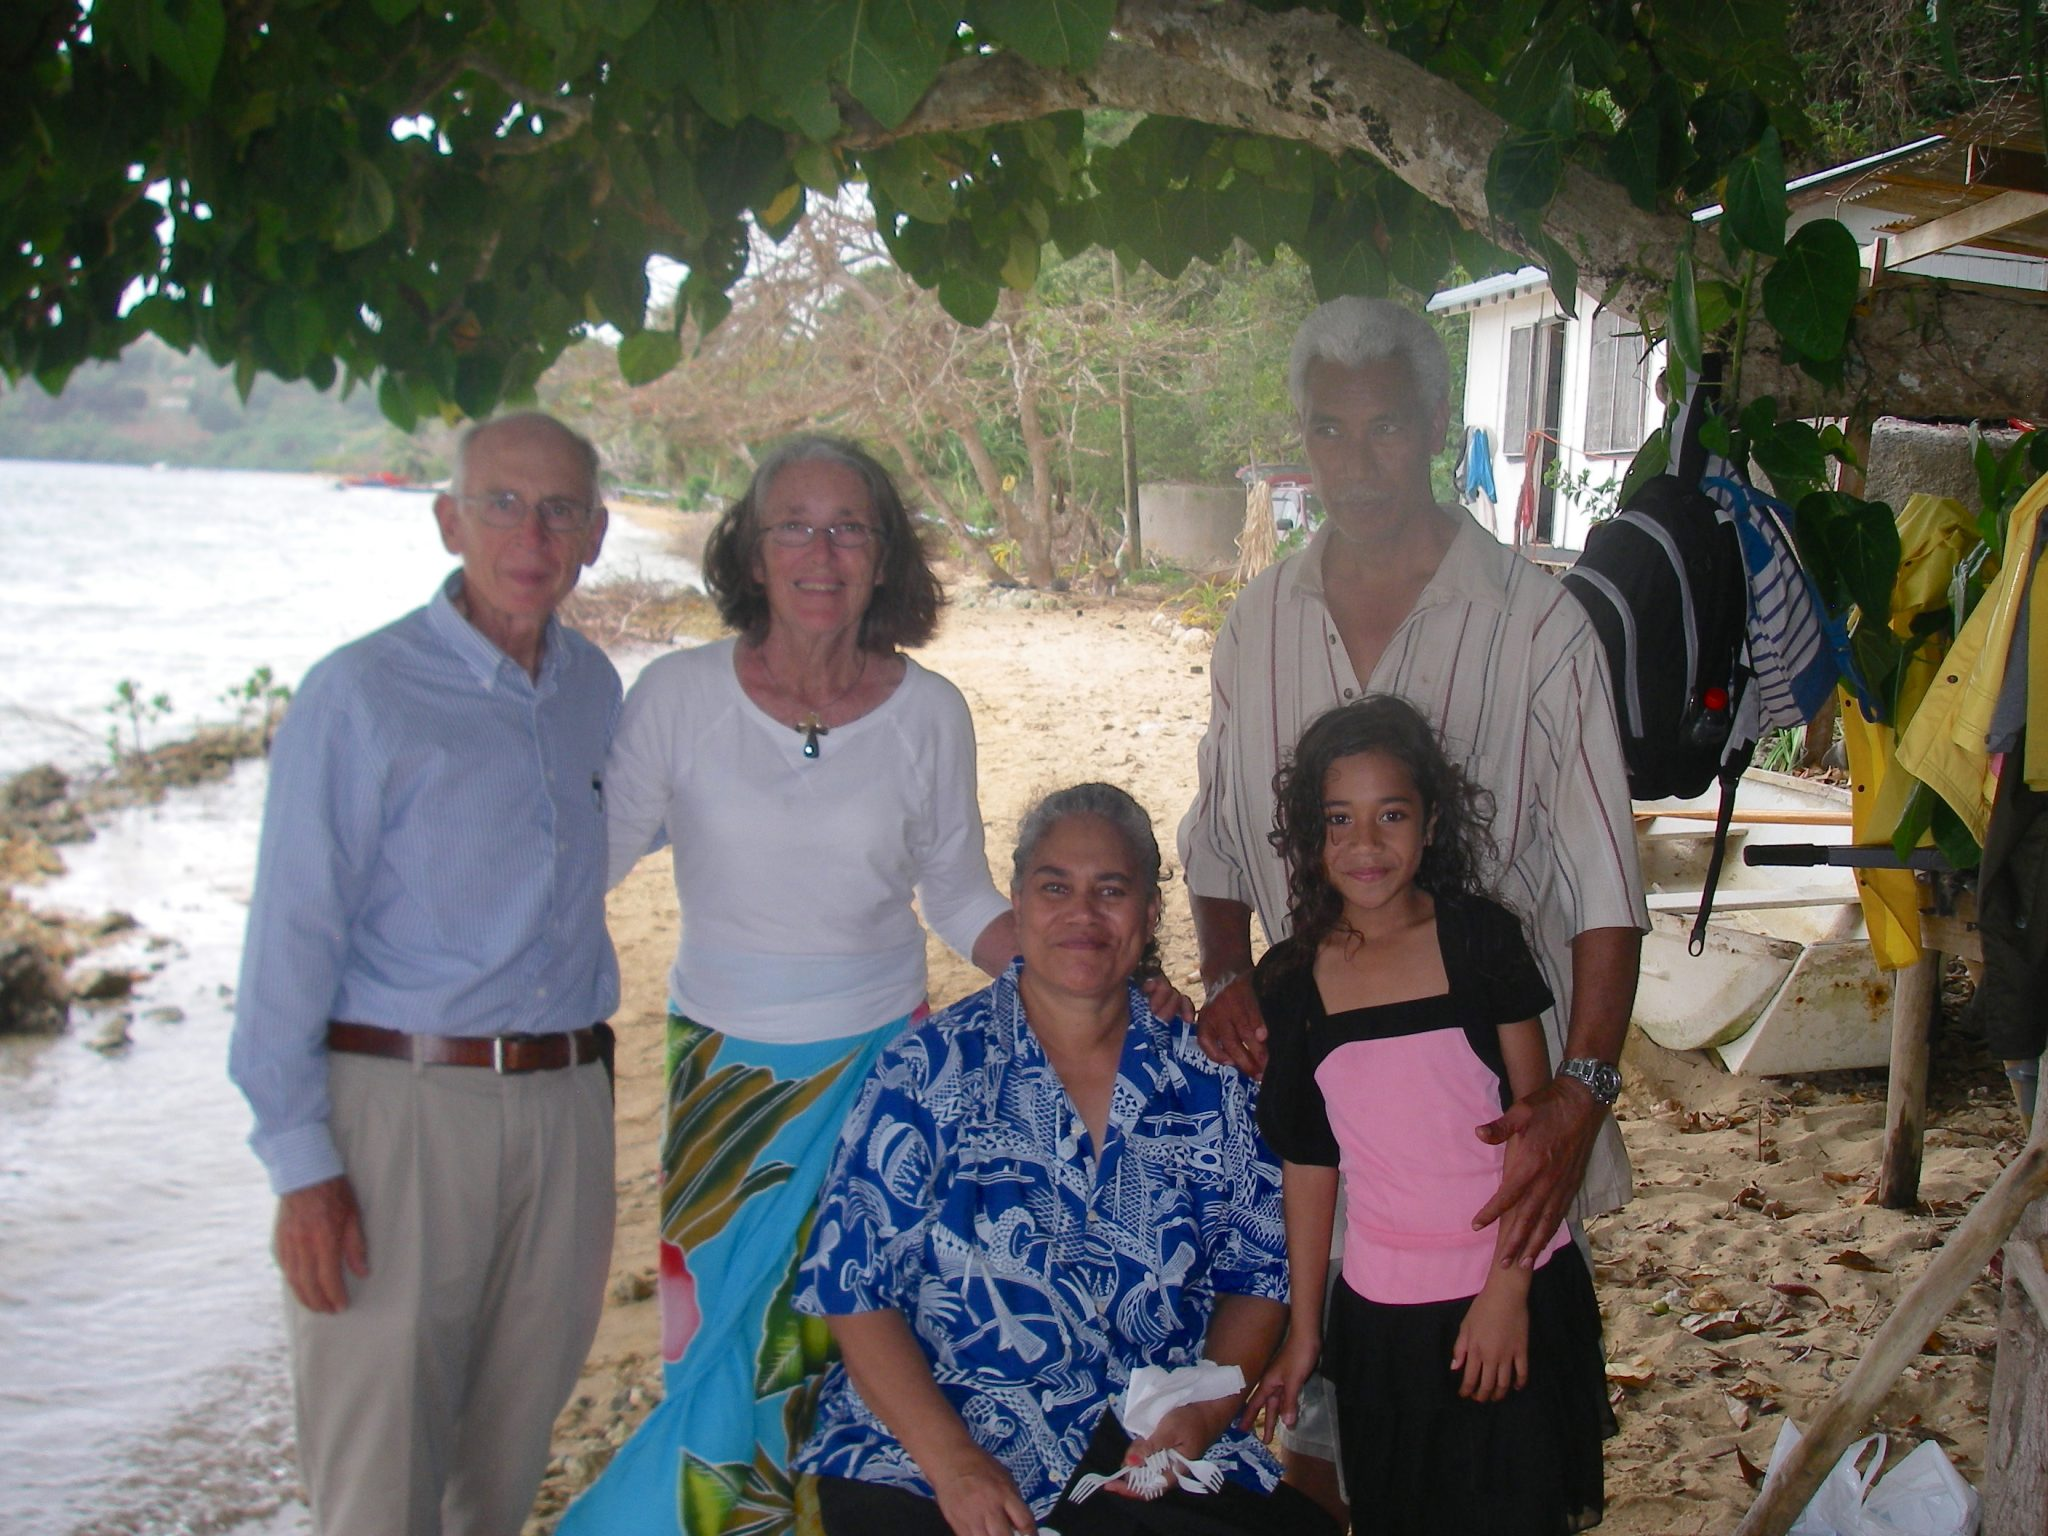 42. Soakai was the teacher at the local high school who asked me to teach the students about basic drawing and fine art. Jeff, Anne, Ana, Soakai, and the youngest daughter, Tiara are pictured here by their home on the beach